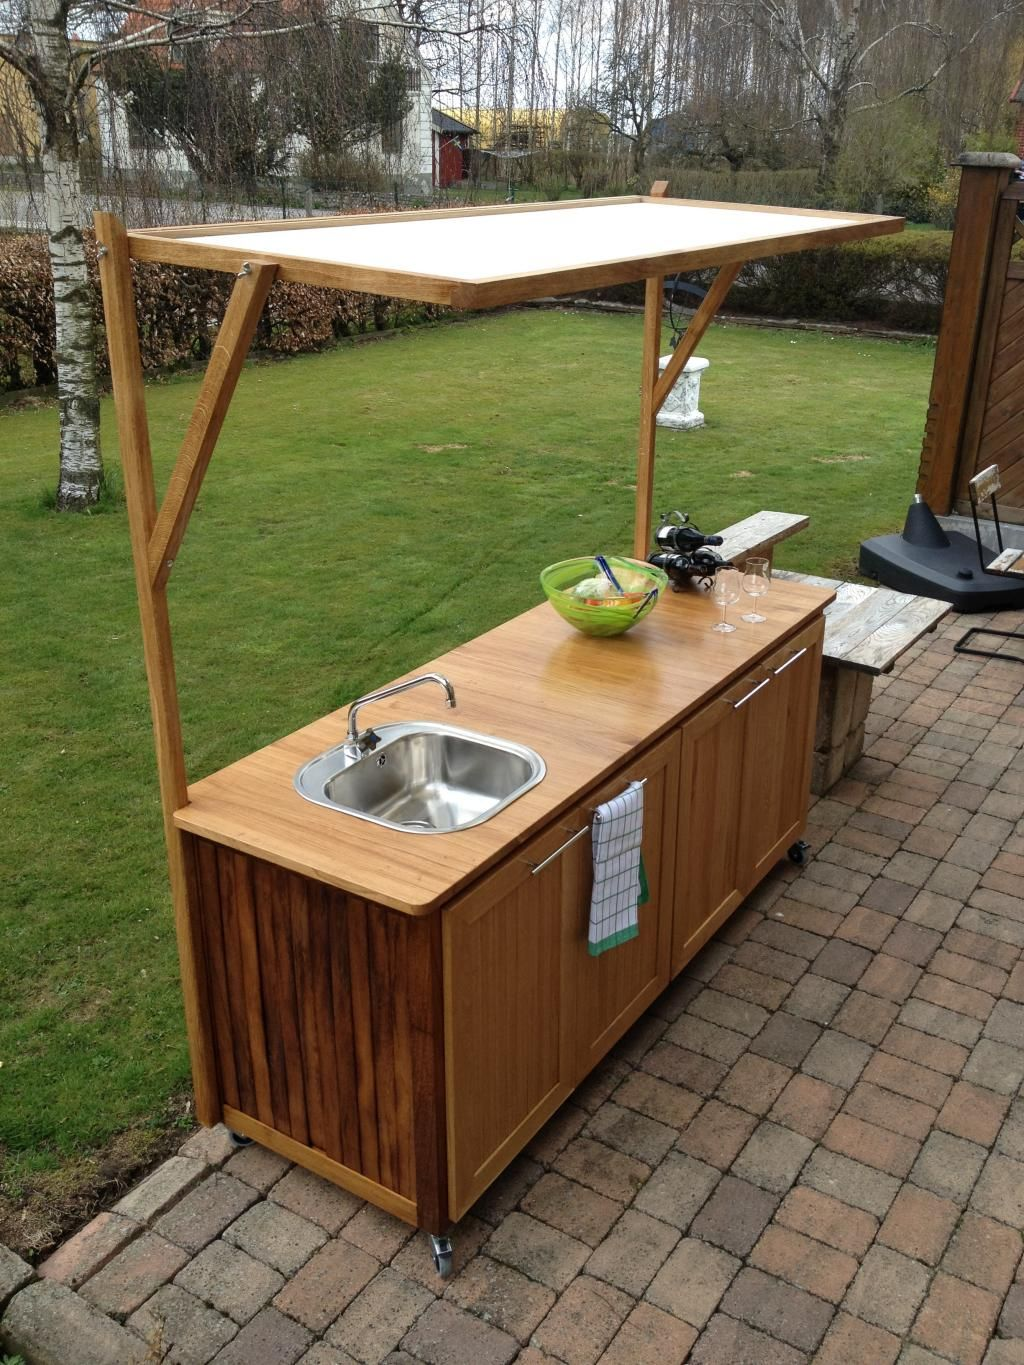 ... Outdoor Kitchen Sink Cabinets With Shades Build Your Own Outdoor Kitchen  Plans Home Design ... Part 7